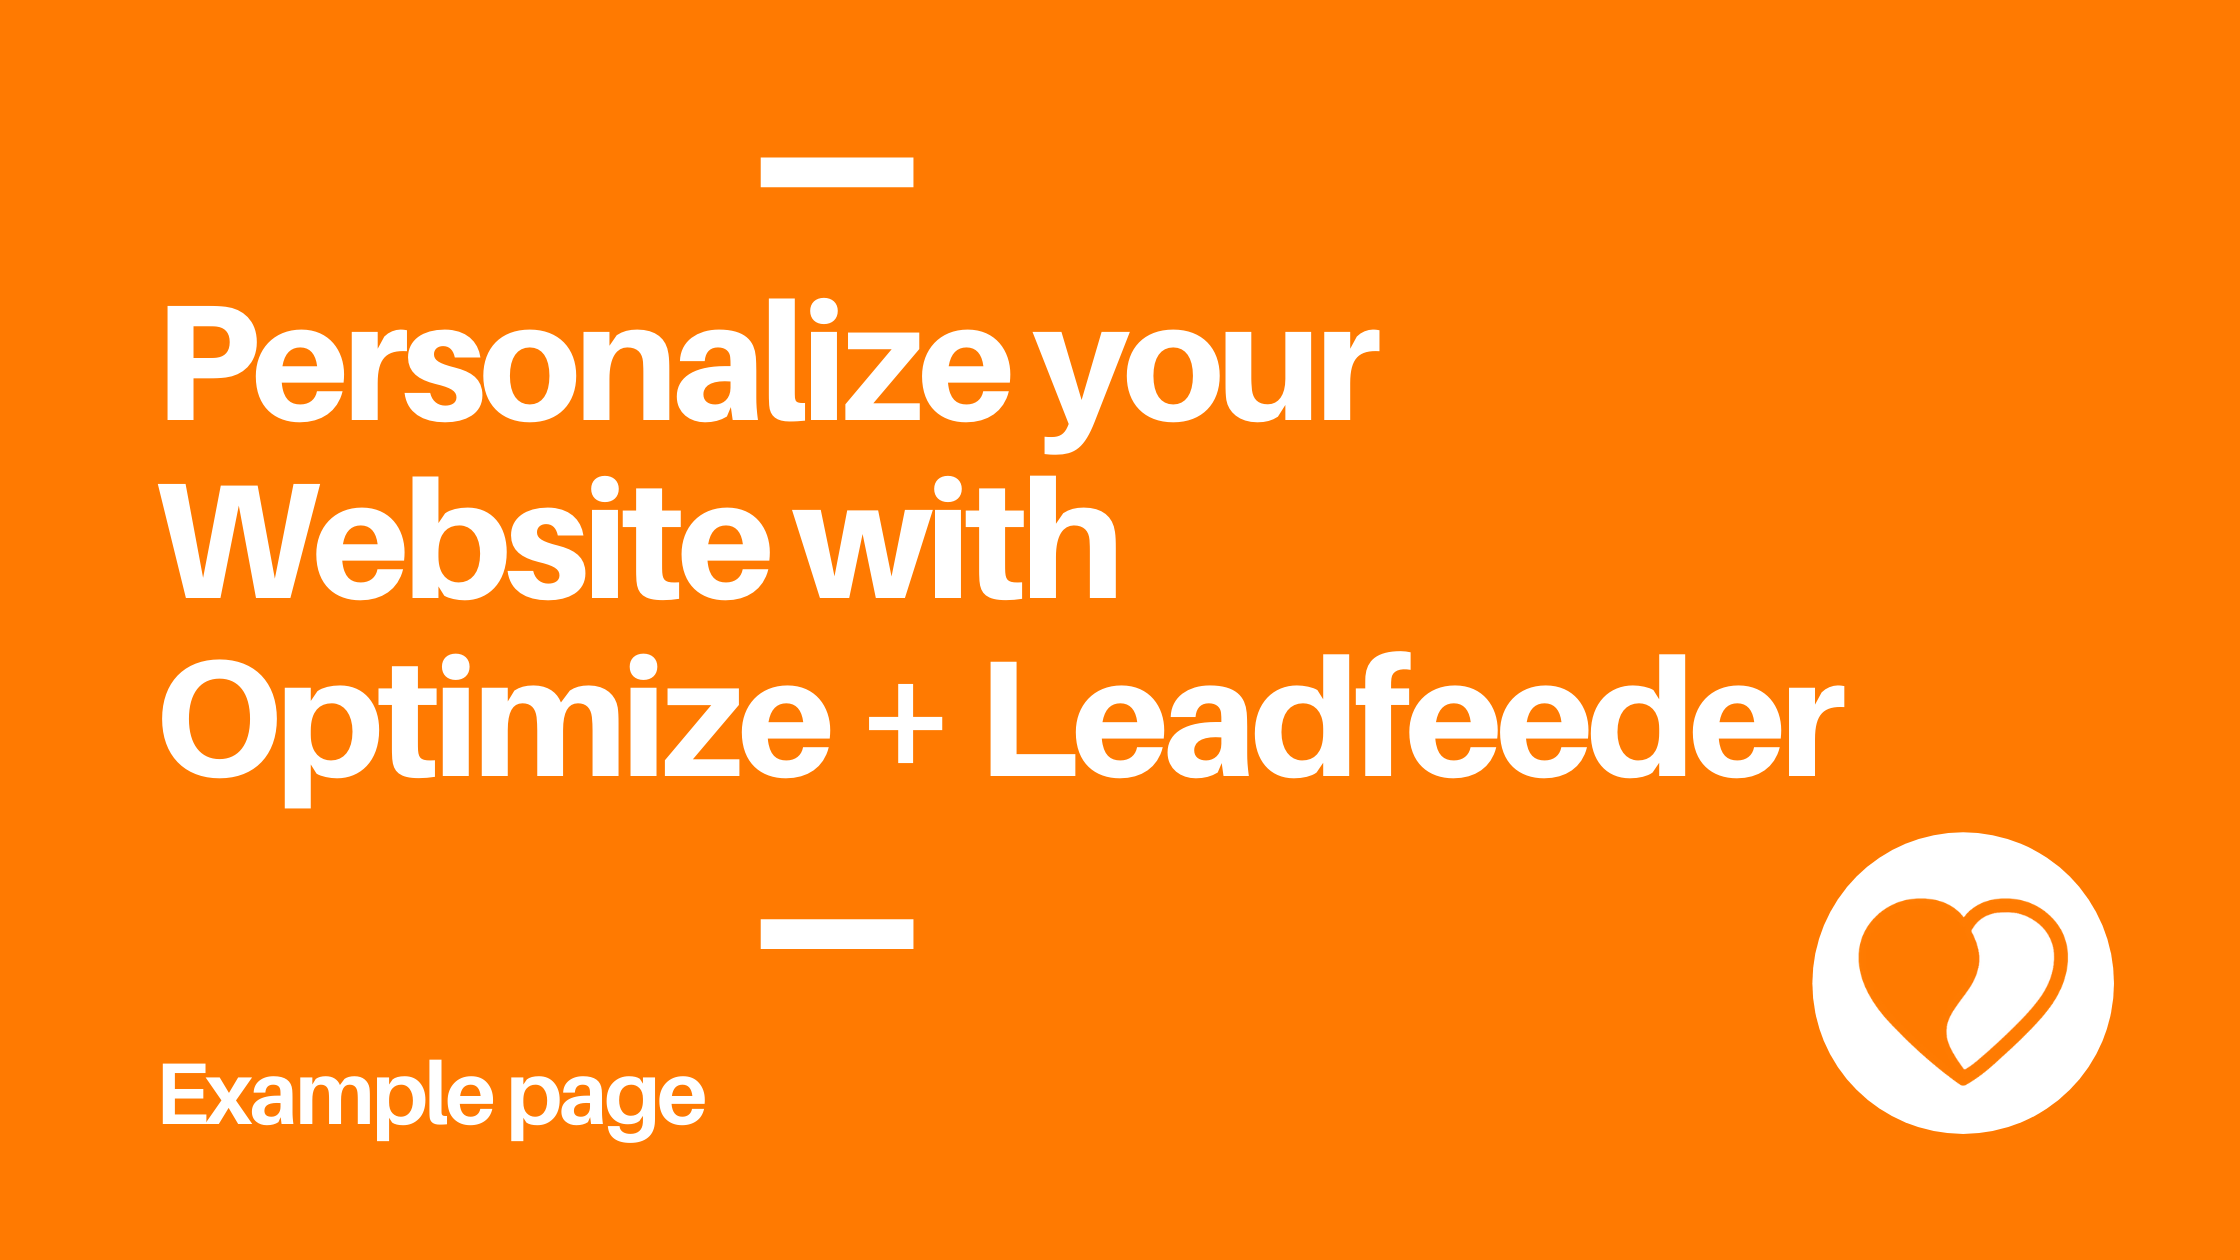 How to personalize your website